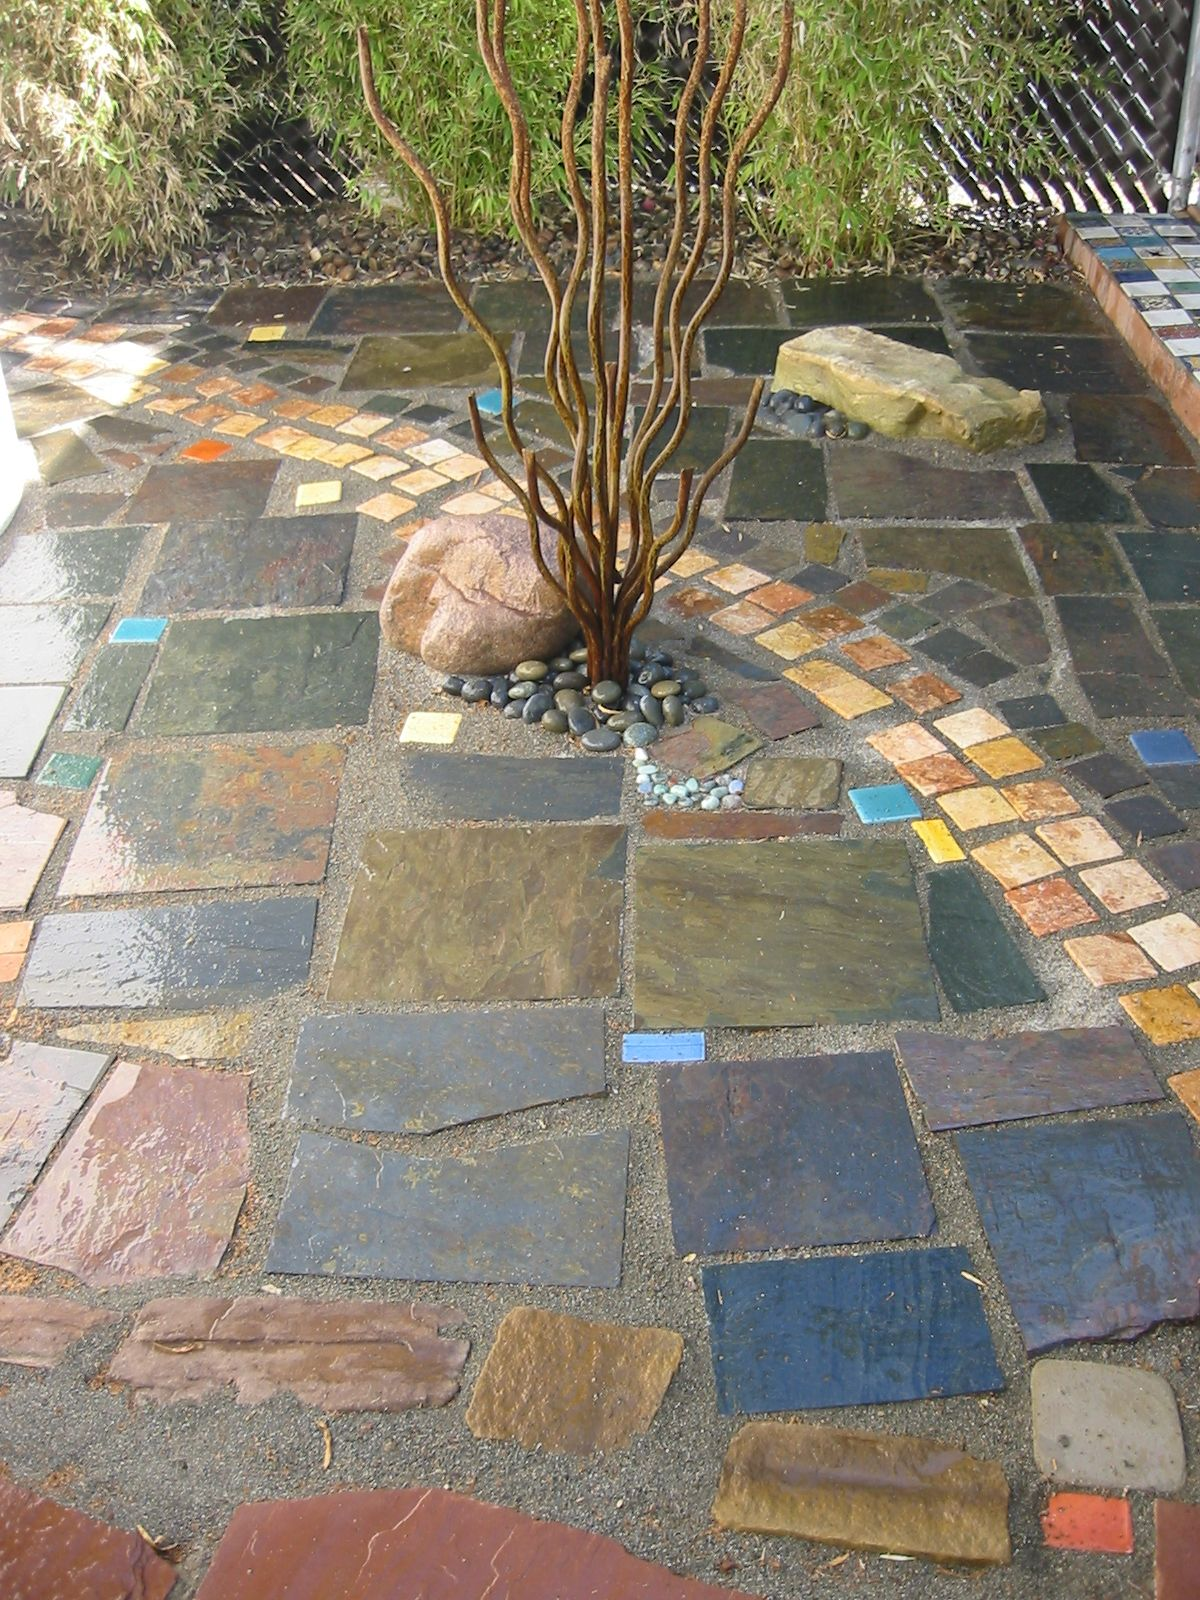 Outside Patio Tile Ideas: Me, My House And Cats!